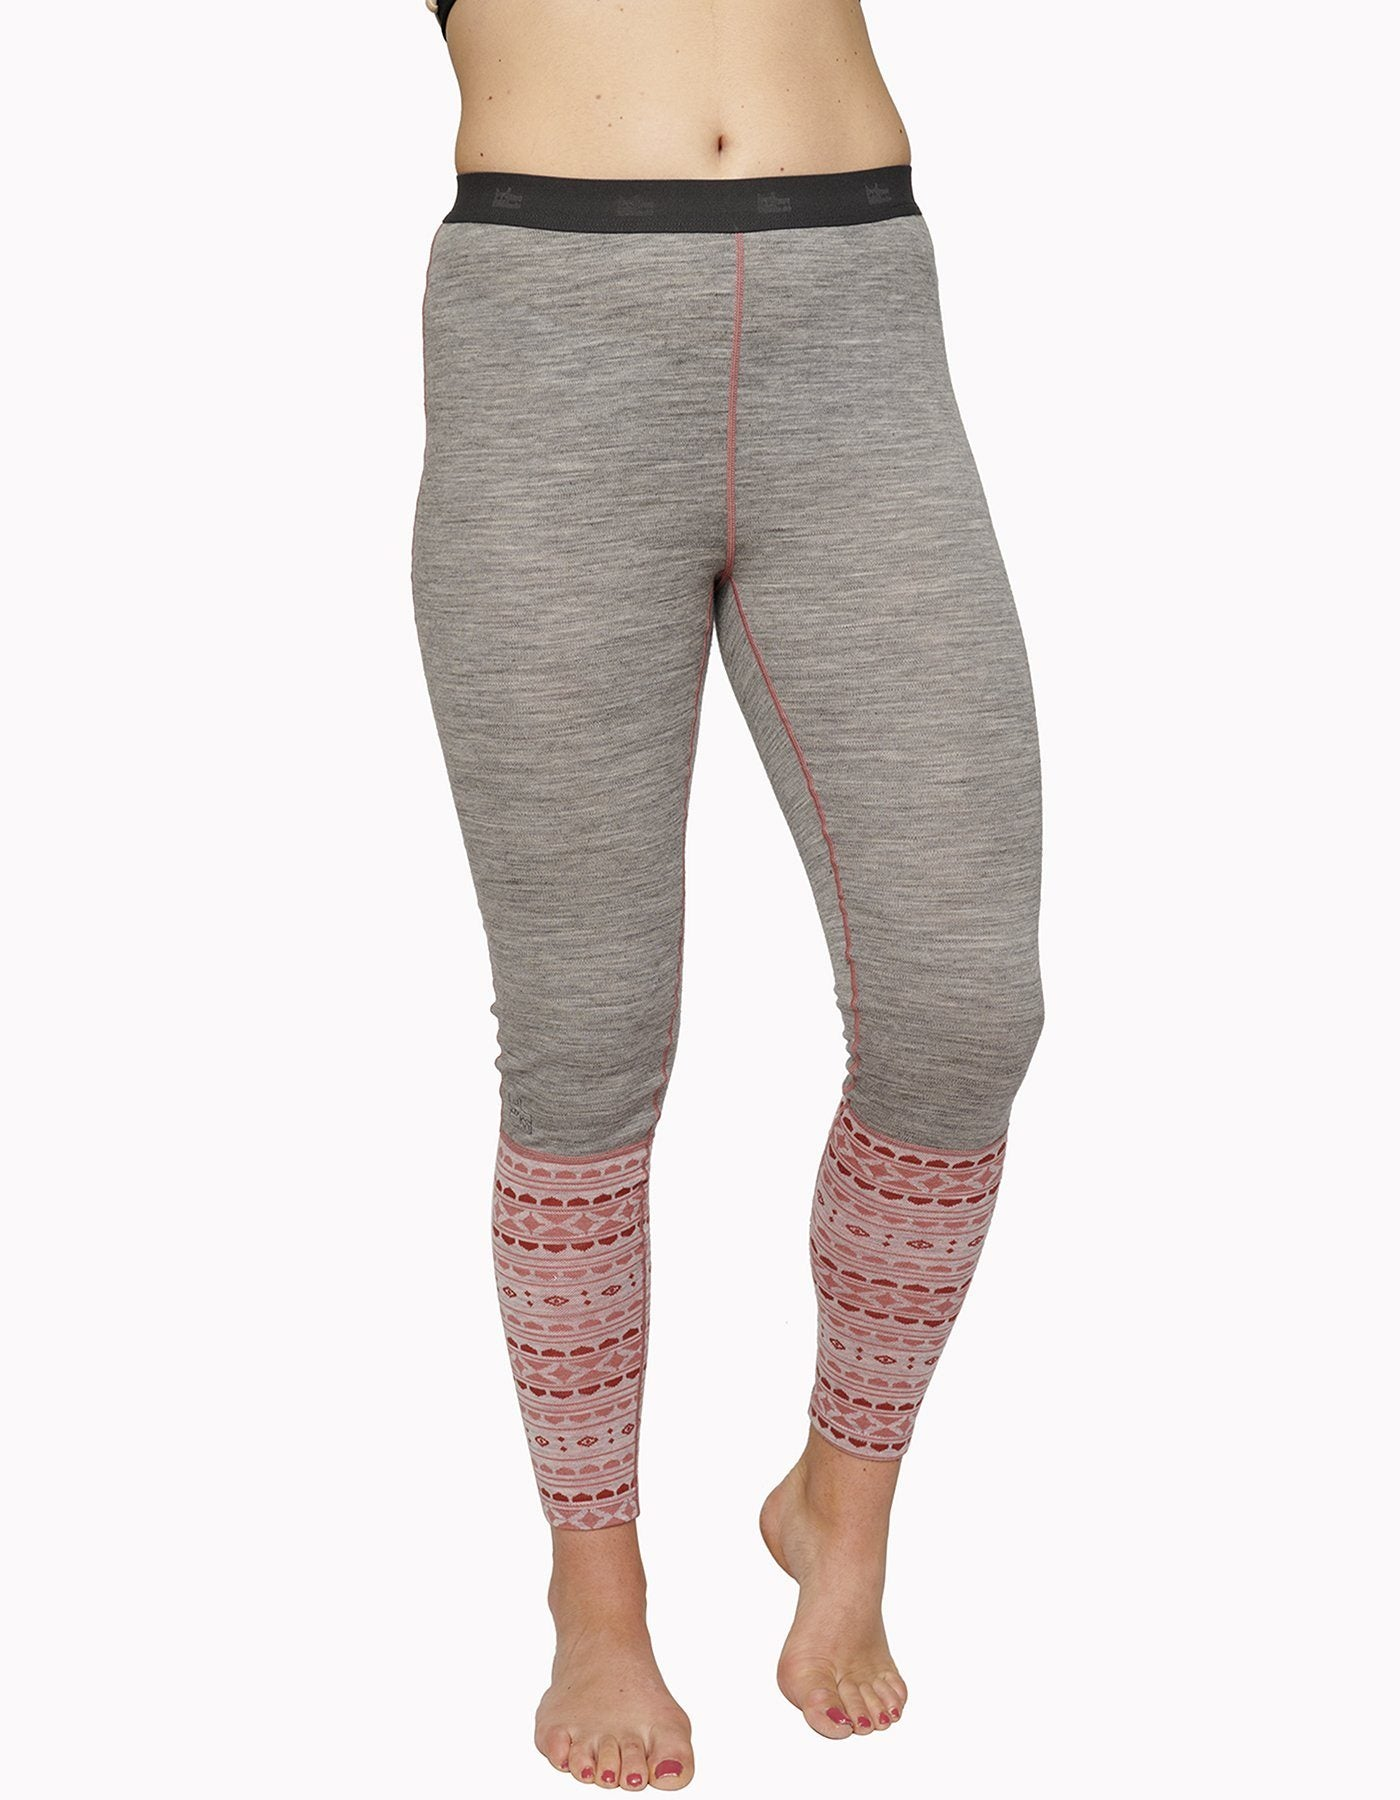 Varg - Women's Blanktjärn Wool Pant - Winter Grey/Dalarna - Merino Wool - Weekendbee - sustainable sportswear